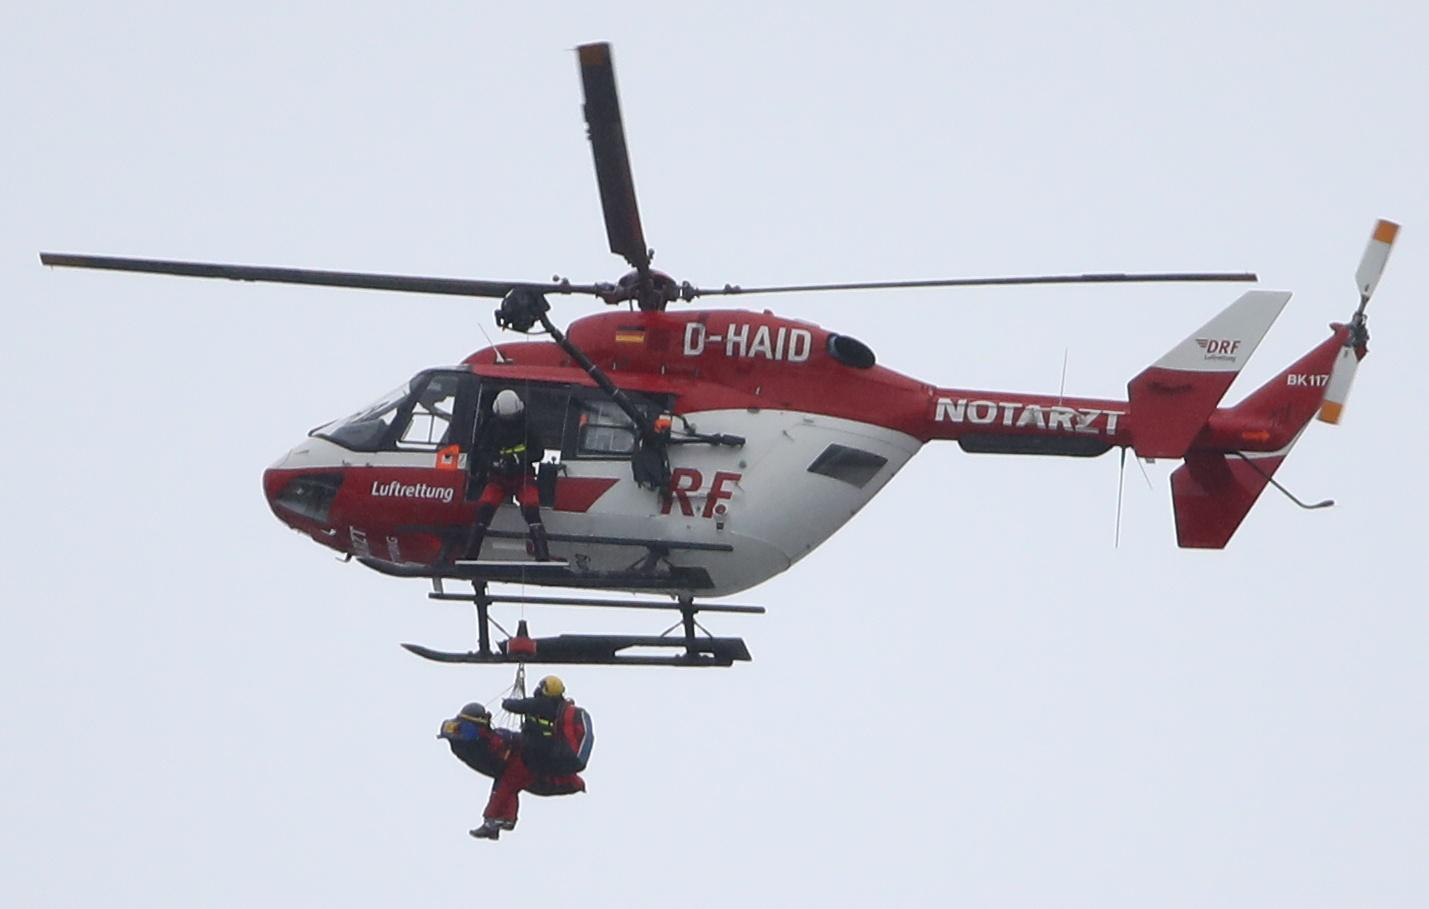 The American skier was then airlifted by ambulance to hospital in distressing scenes